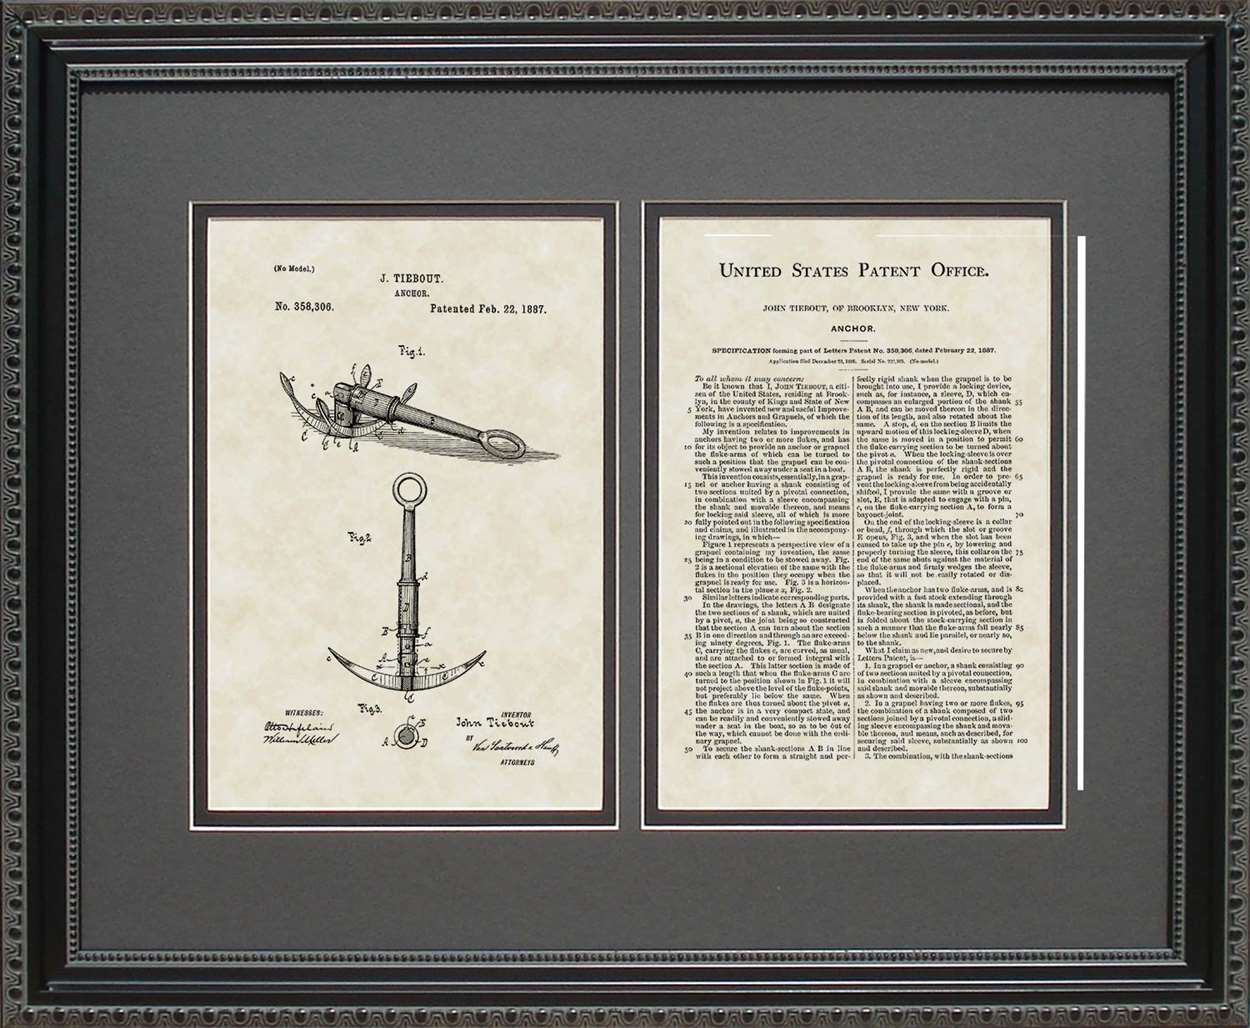 Boat Anchor Patent, Art & Copy, Tiebout, 1887, 16x20